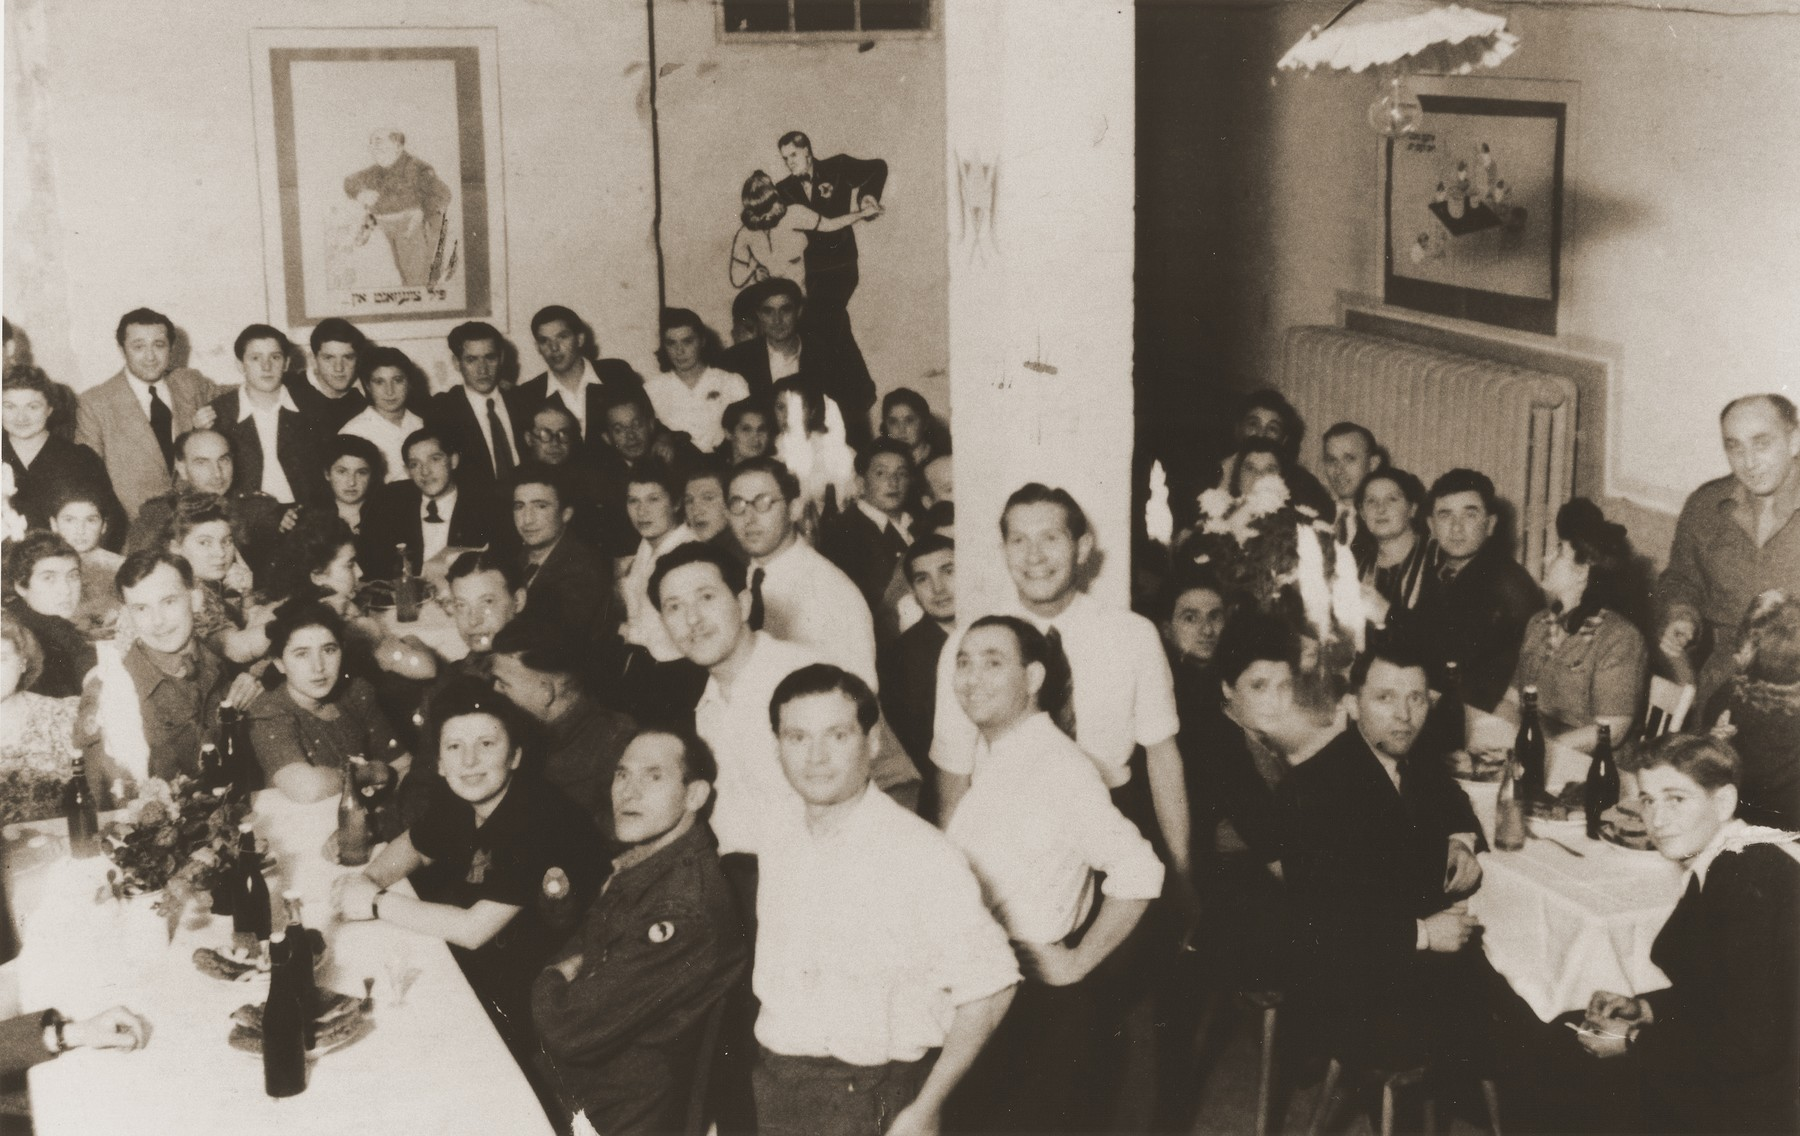 Jewish residents and British soldiers attend a party in the Vinnhorst displaced persons center.  Included in the photo are Manek Lipke. Halinka Lipke, Nadia, Tola Pilcewicz, Herman Zelman, Chaska Lipke, Monya Sender and Kapelusz. The latter was drowned in a lake after being forcibly held underwater by antisemtiic German boys.